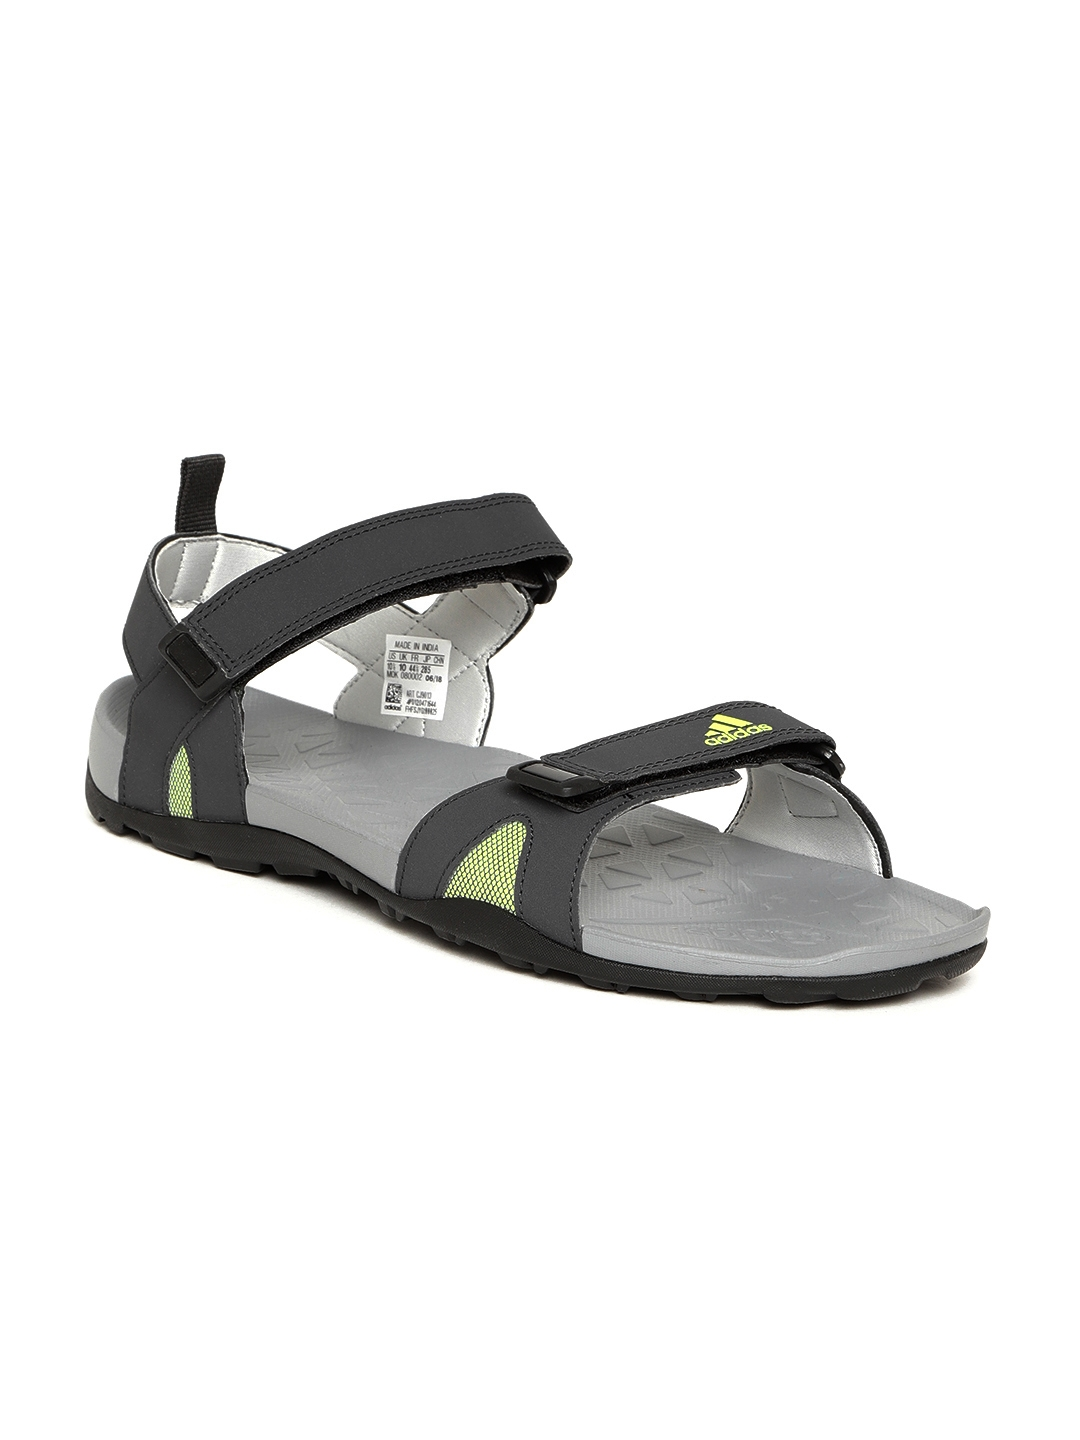 204658d49b00 Buy ADIDAS Men Grey Fassar Sports Sandals - Sports Sandals for Men ...